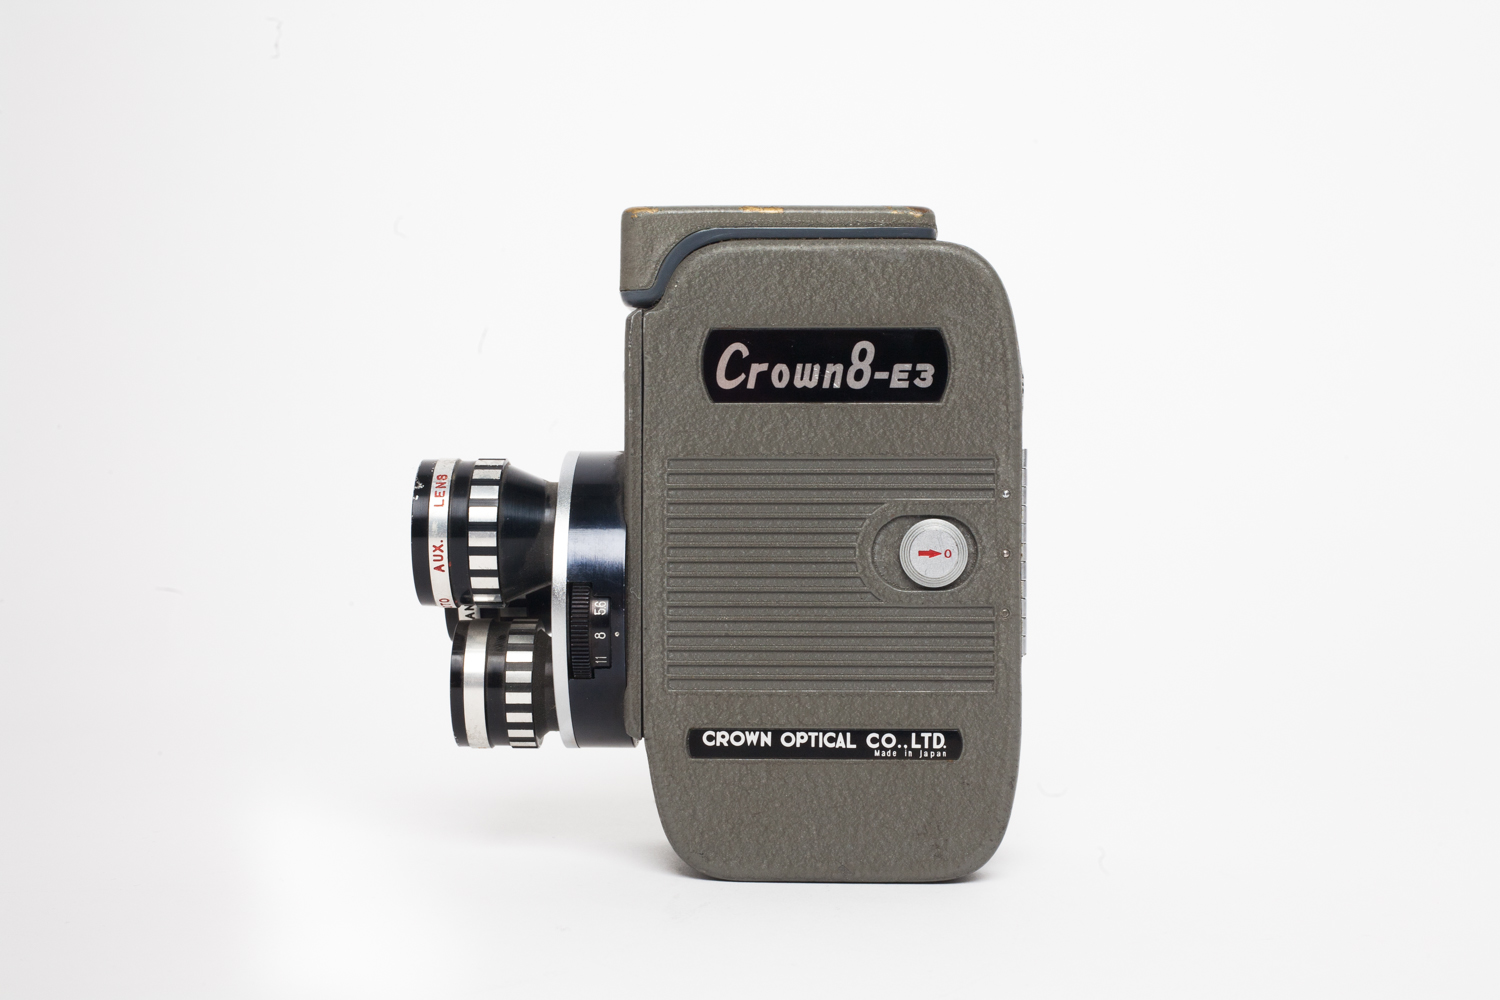 Crown 8 E3 Cine Camera